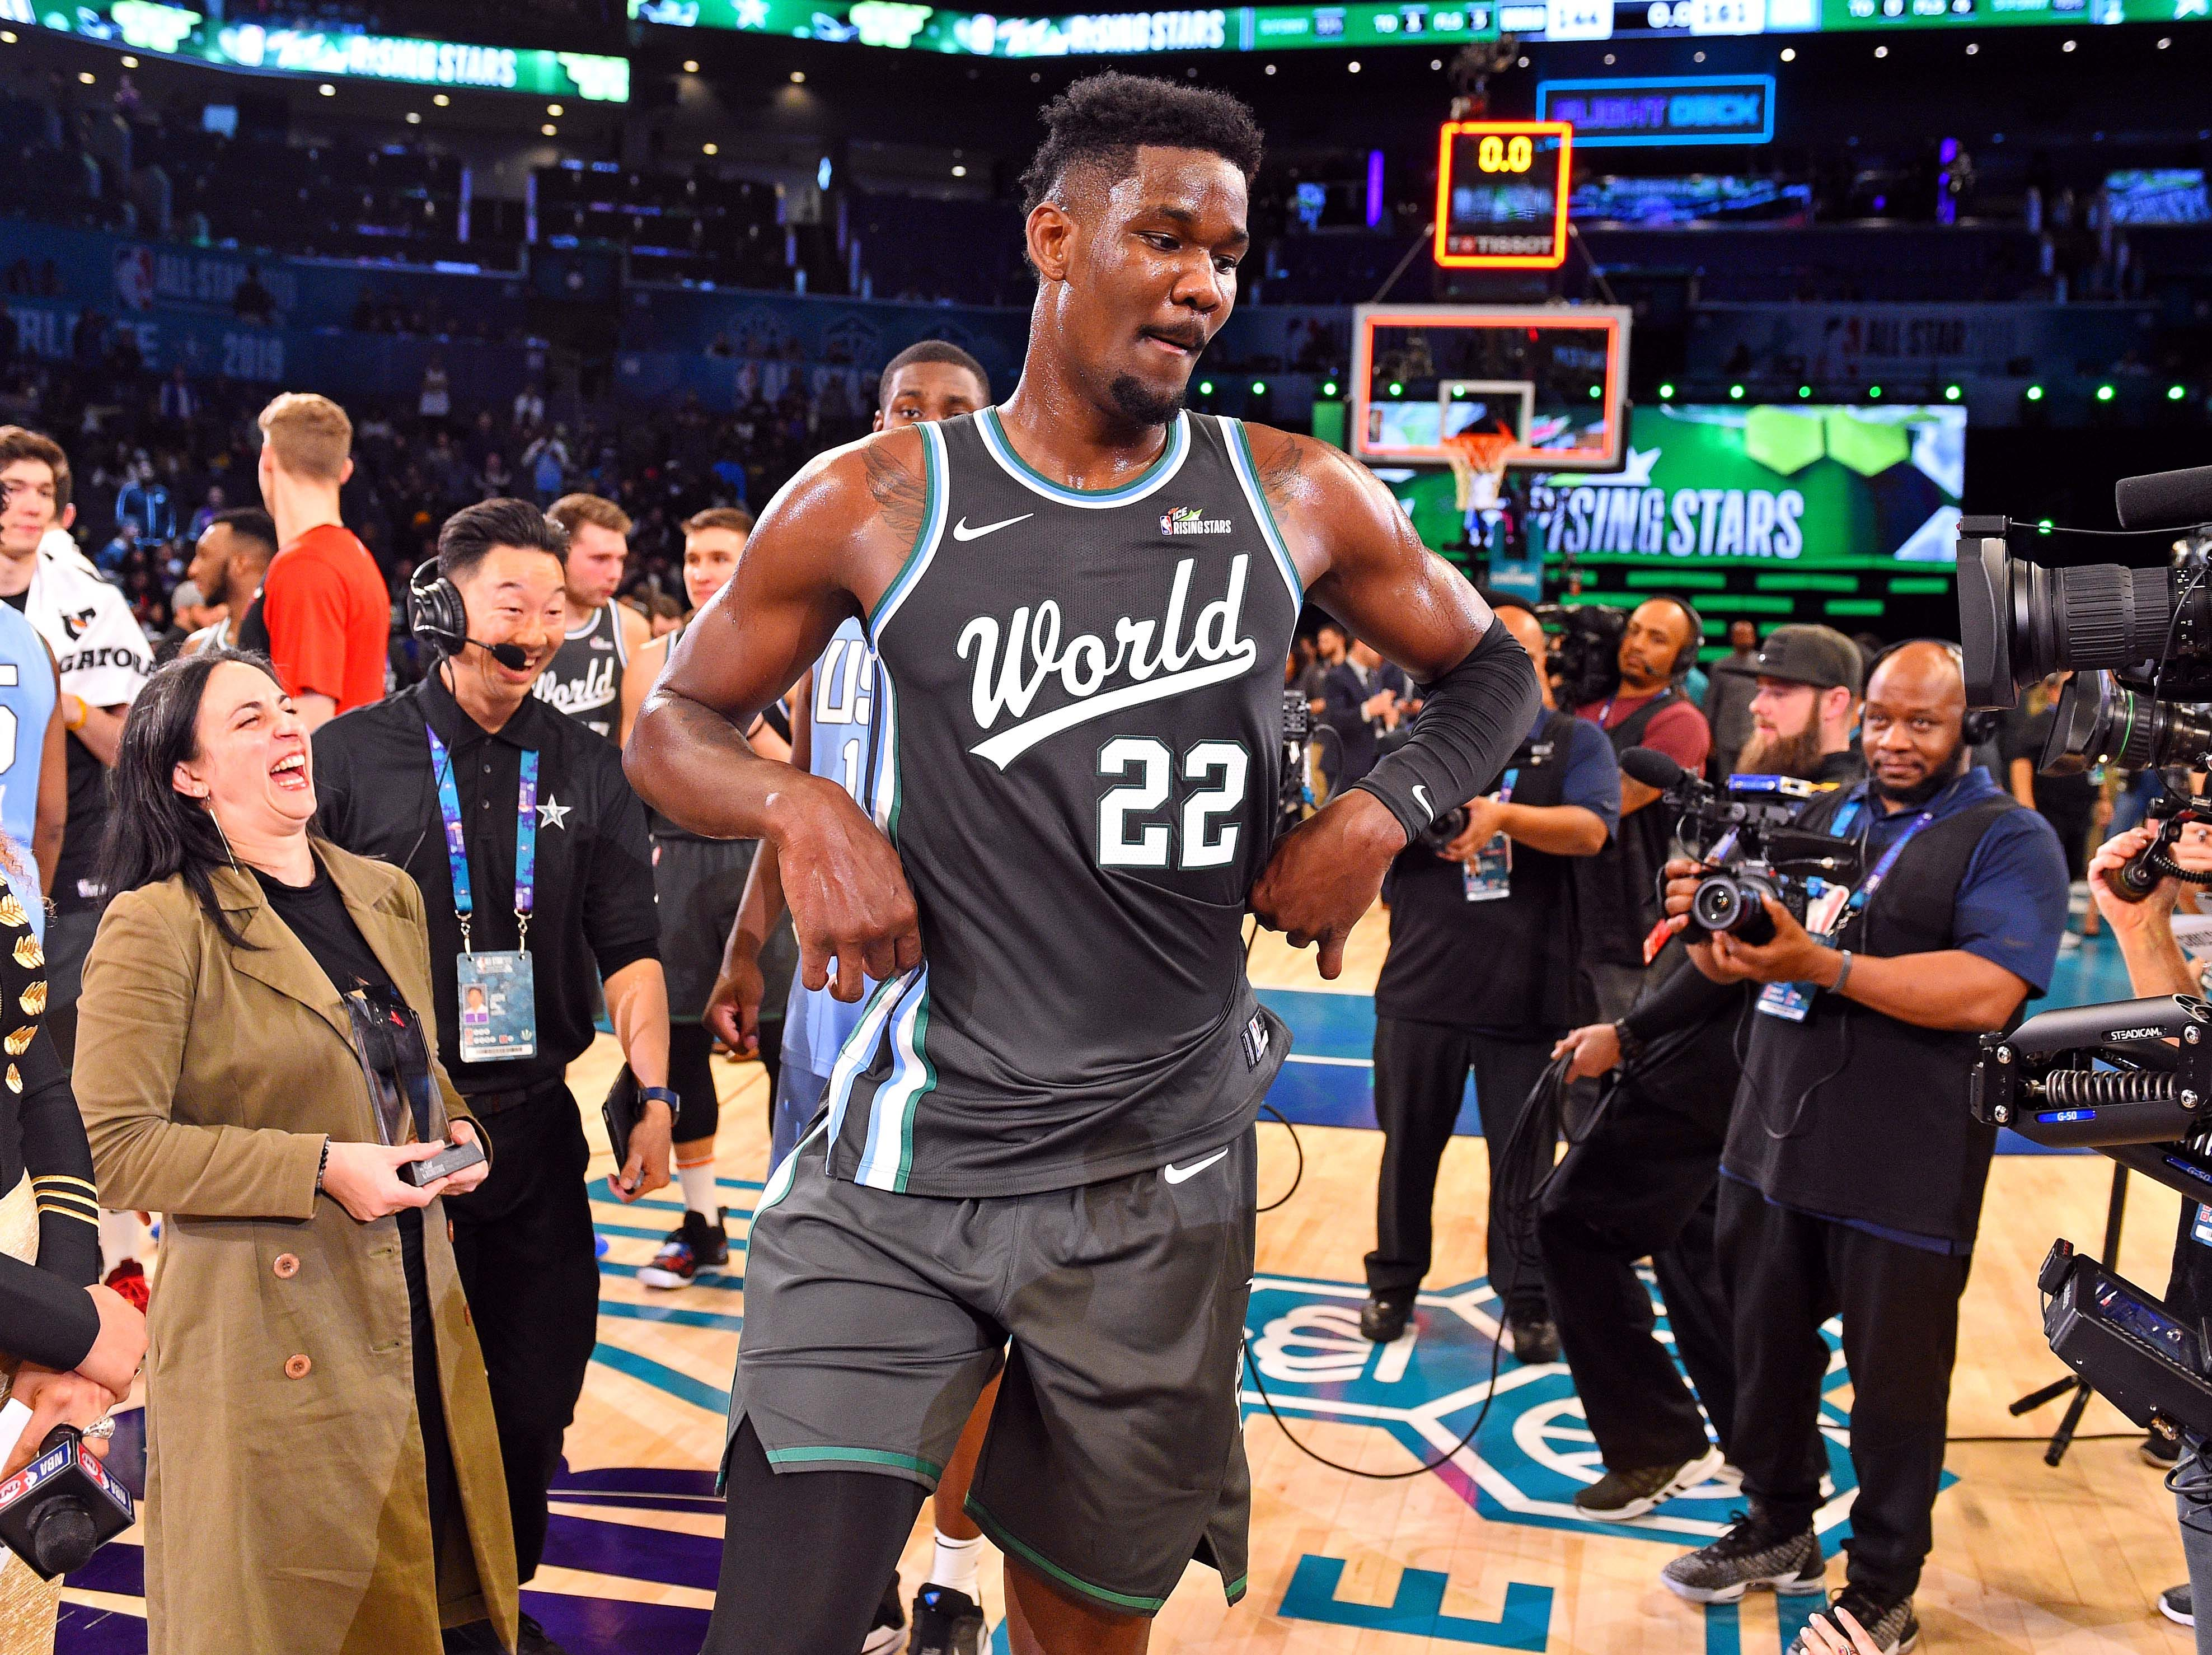 World Team center Deandre Ayton of the Phoenix Suns dances after the All-Star Rising Stars game.